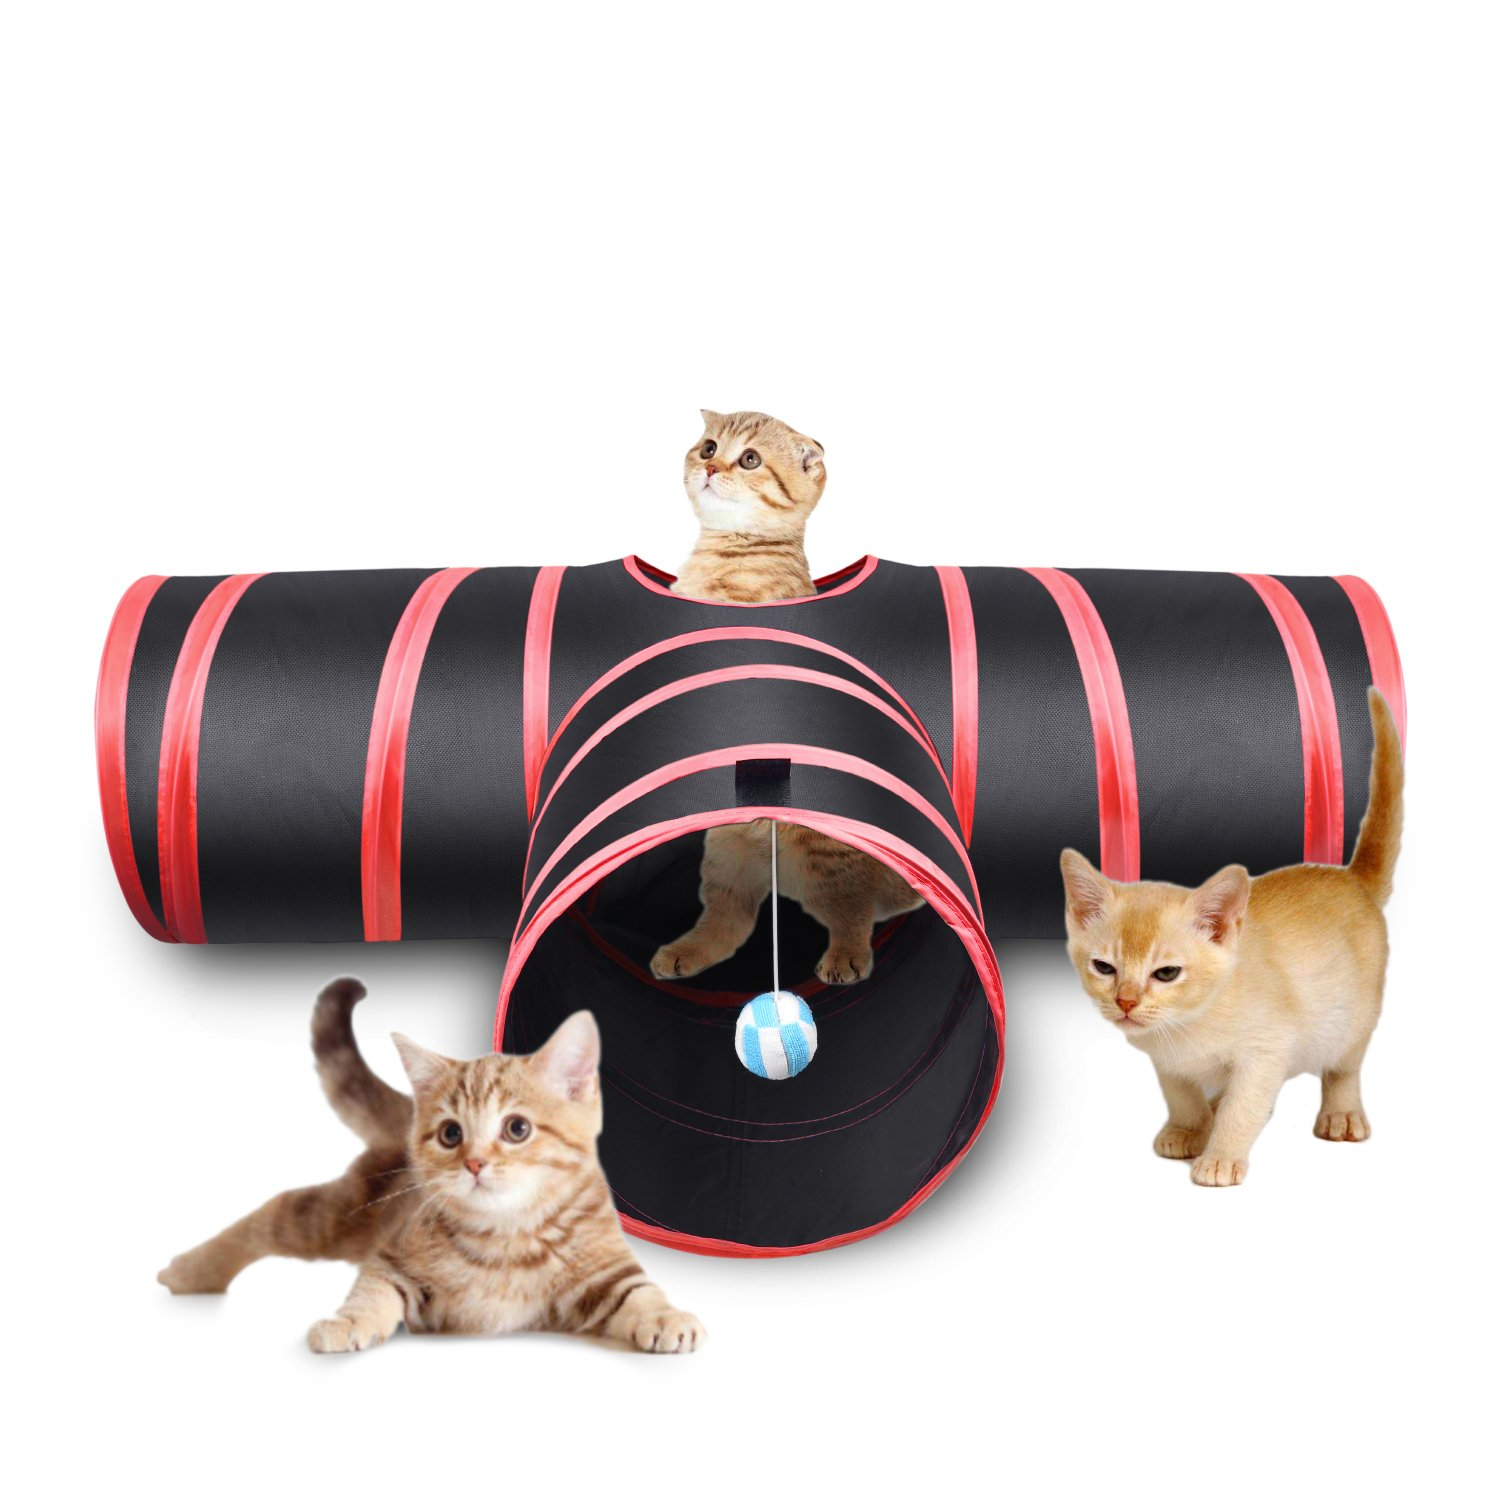 3 Way Cat Tunnel Creaker Collapsible Pet Toy Tunnel with Ball for Cat Puppy Kitty Kitten Rabbit (Red)